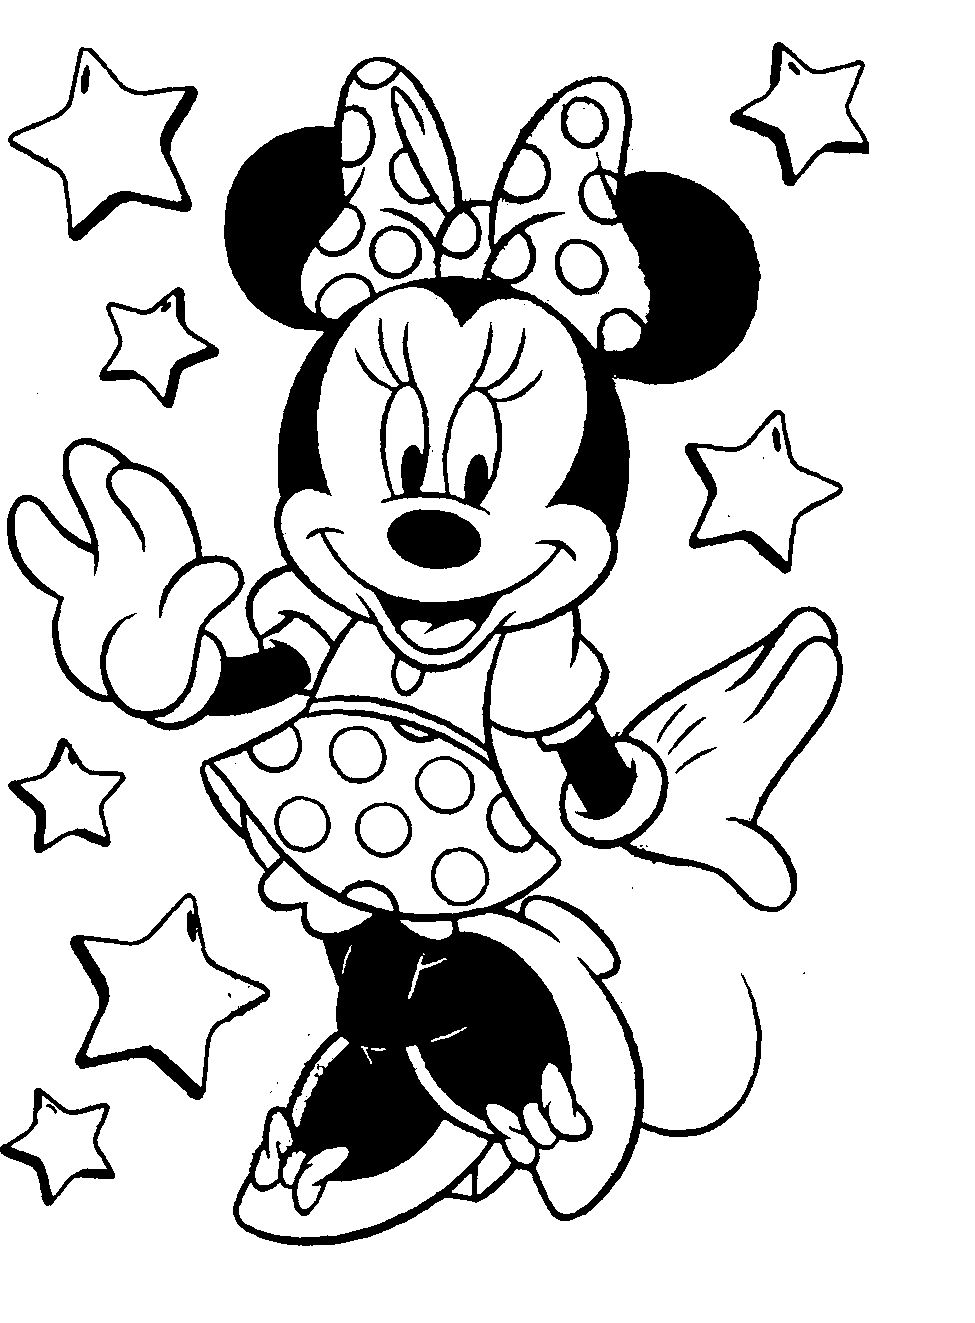 Minnie Mouse_Plane Crazy | Walt Disney | Pinterest | Minnie mouse ...